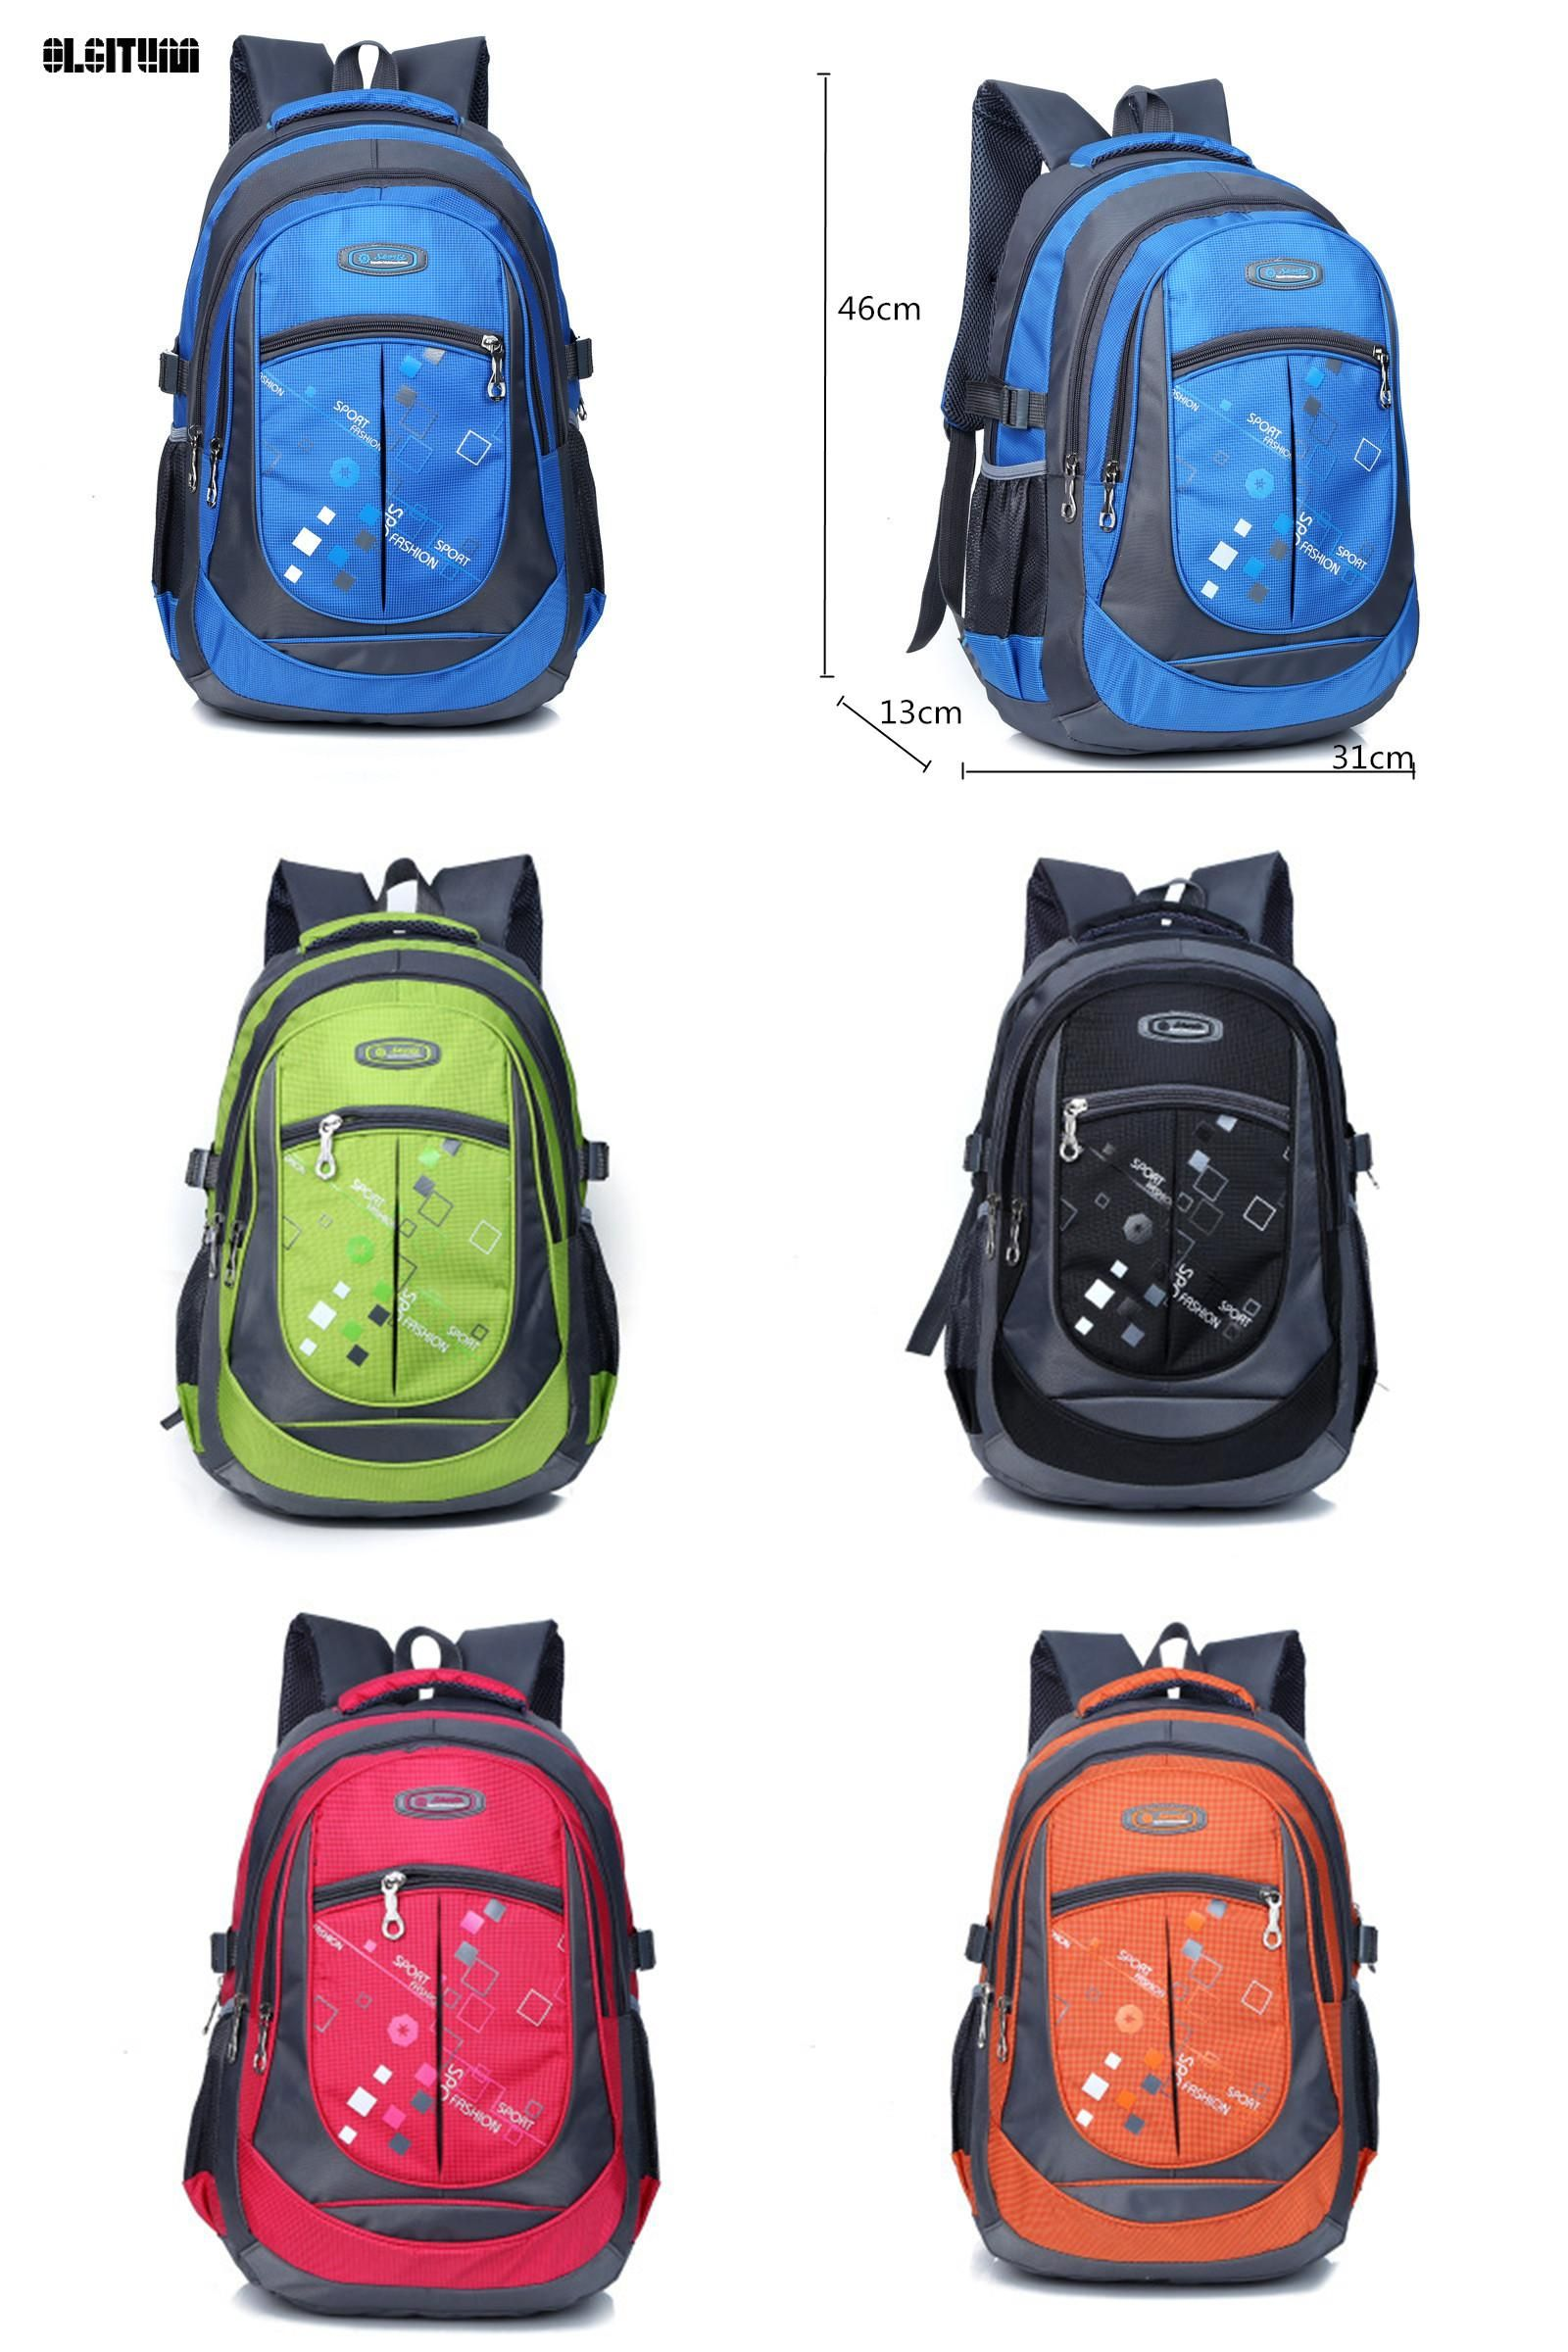 0d9e5dafe0  Visit to Buy  Fashion High Quality Students Backpacks School Bags  Waterpfoof Schoolbag Kids Book